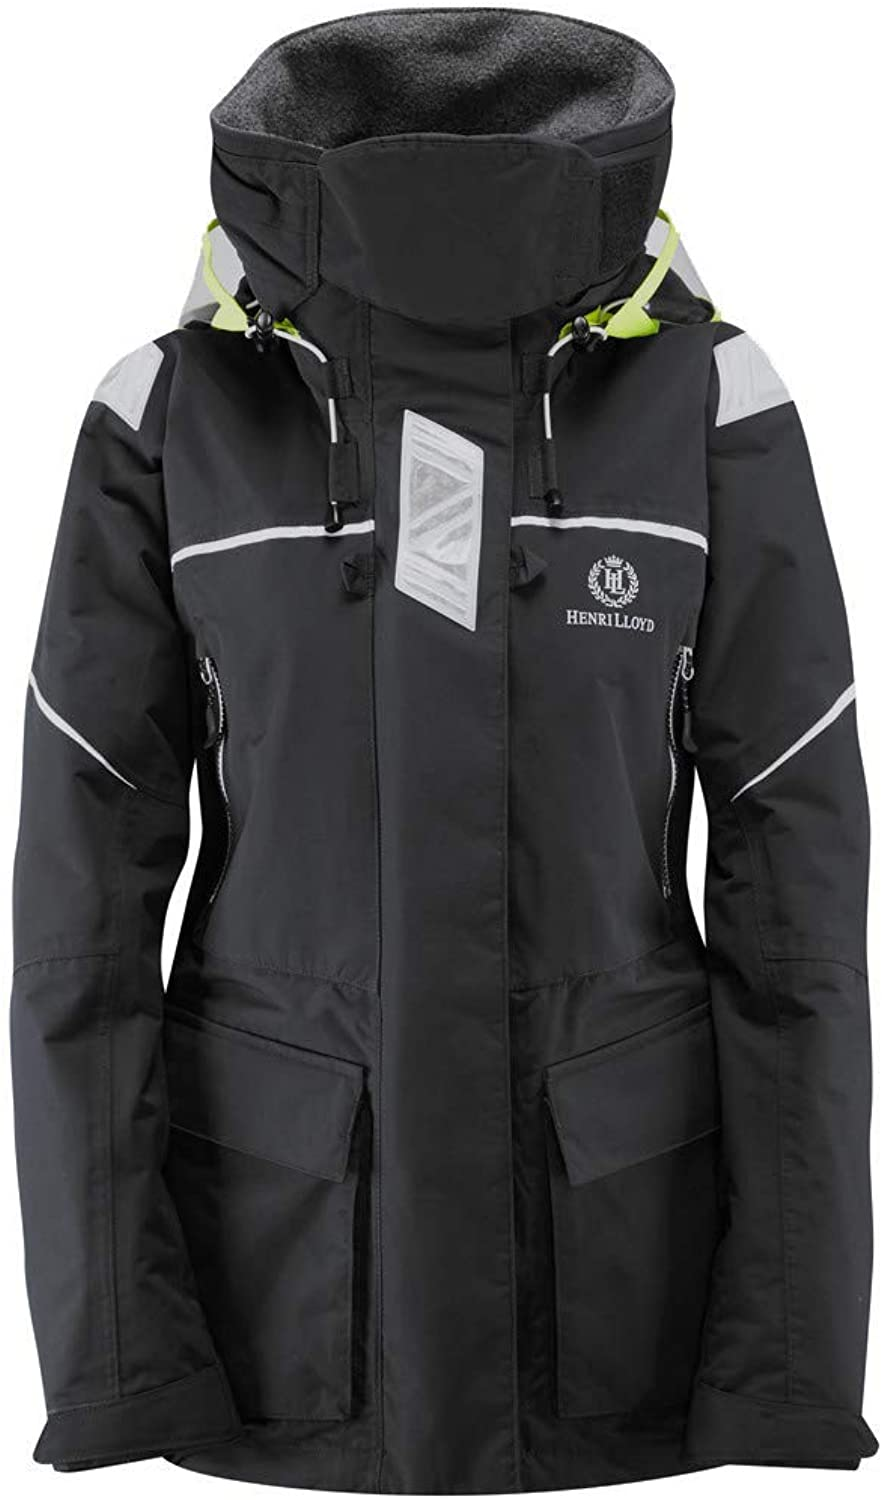 Henri Lloyd Womens Freedom Offshore Jacket Coat New Red. Waterproof & Breathable  OPTIVISION Hood System